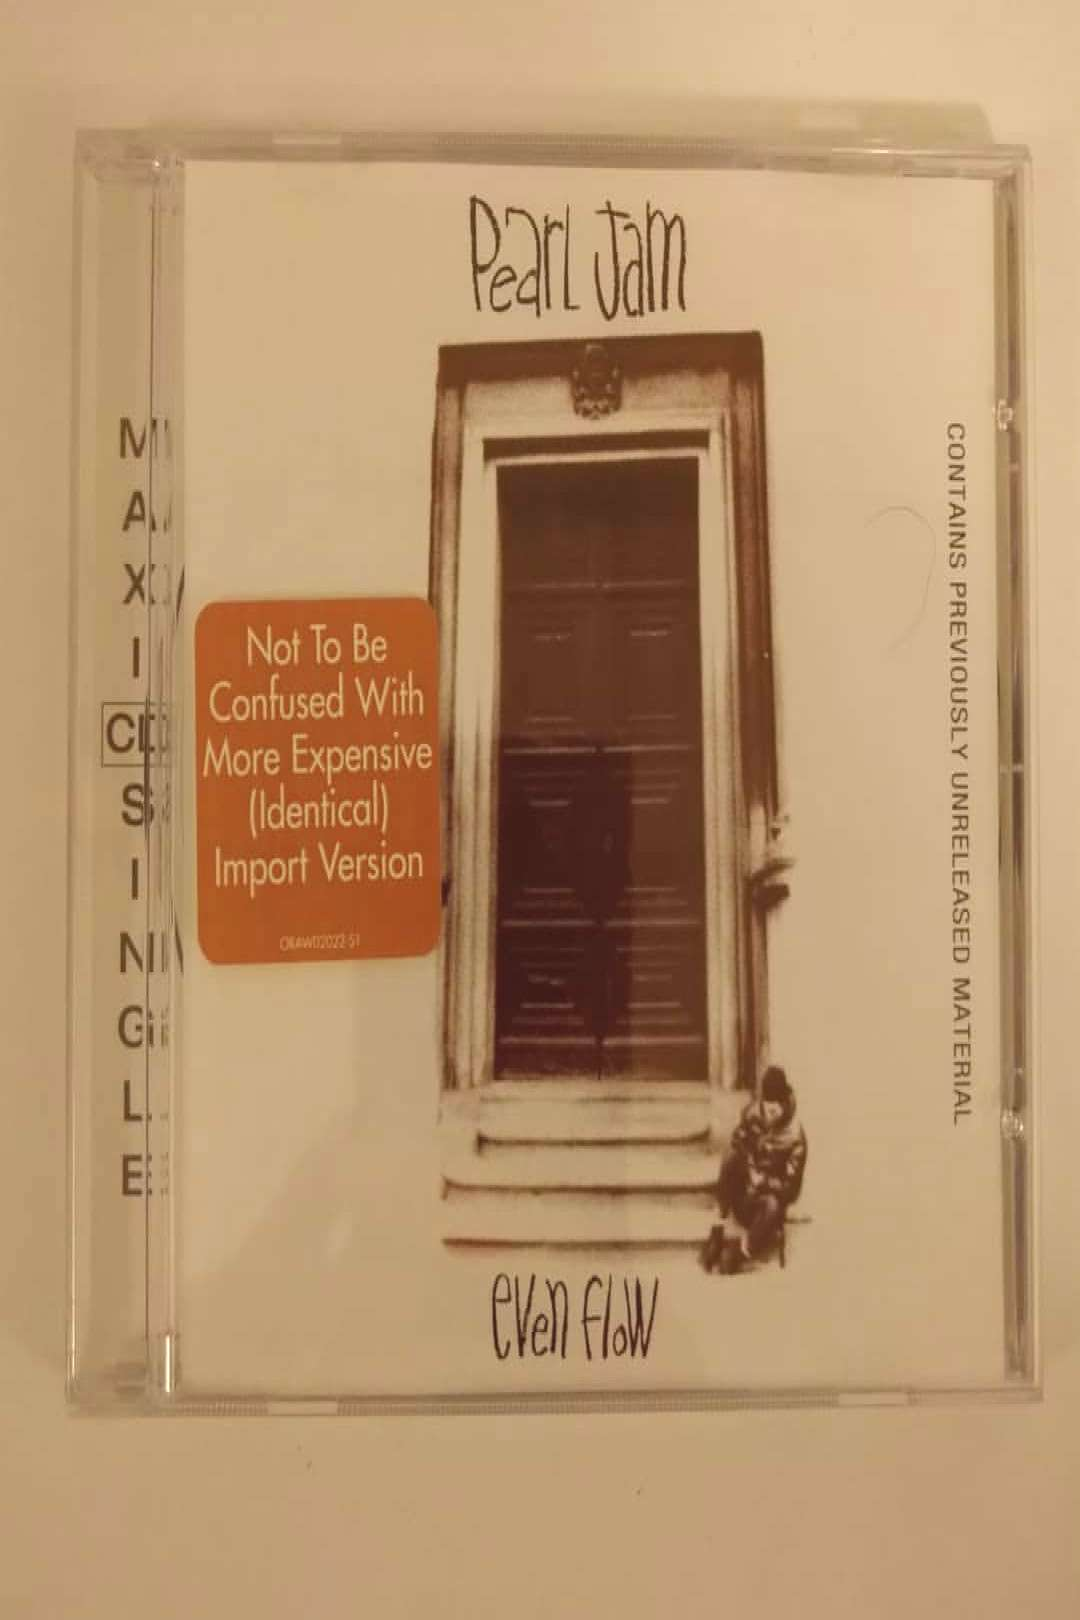 Even Flow (Maxi CD Single) (1992) by Pearl Jam on Compact Disc vi